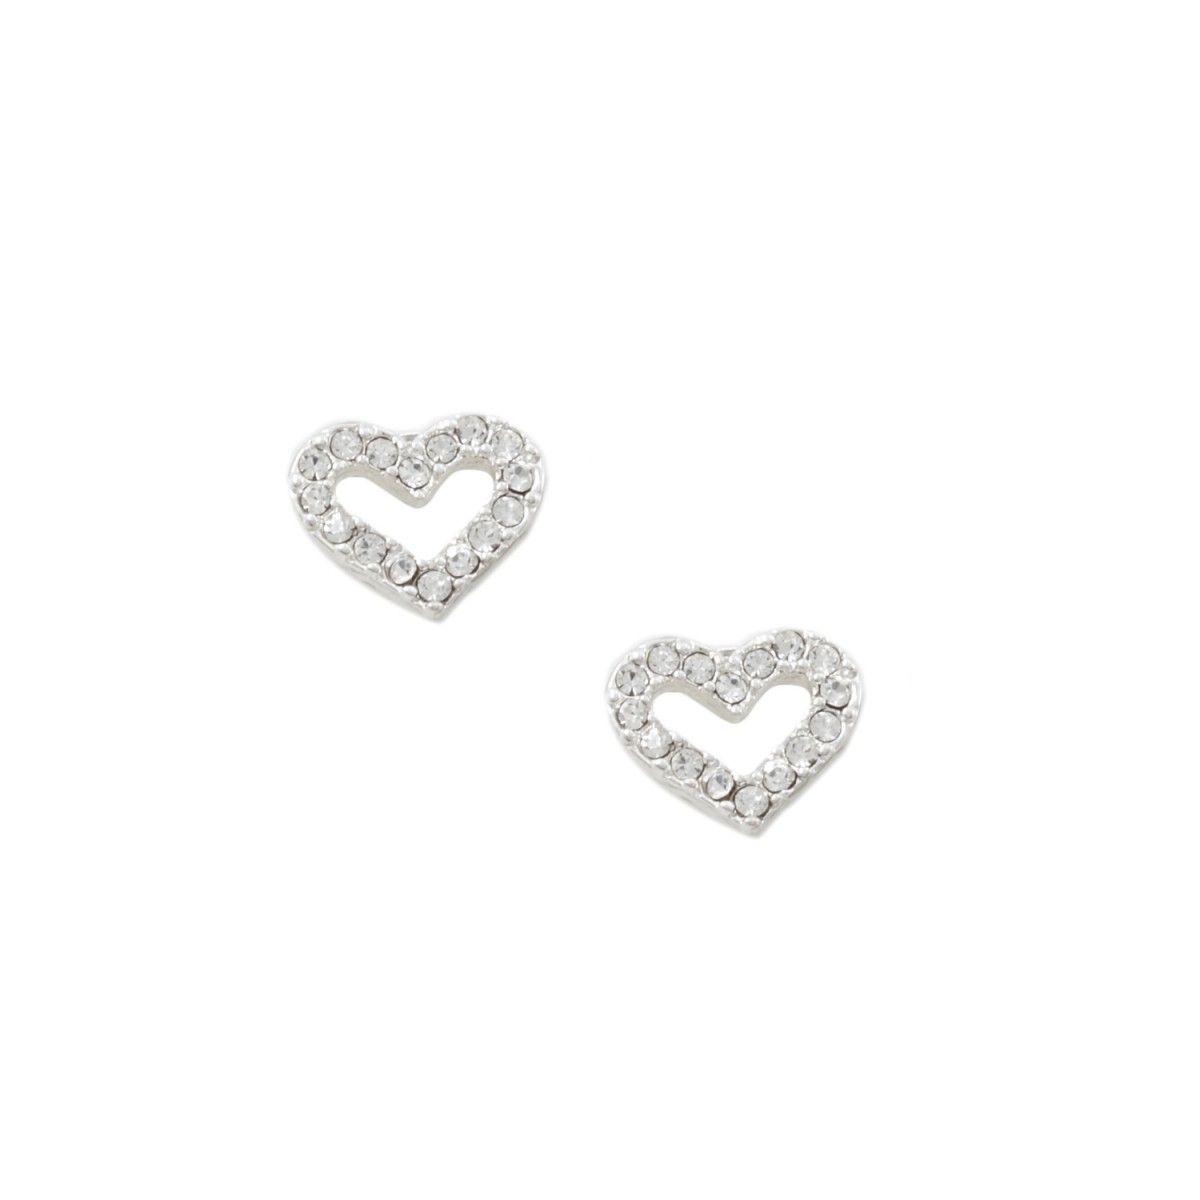 Start your Valentine's Day shopping early! Get her something she will love! #fashionjewelry #ValentinesDay #RT Silver Crystal Rhinestone Tiny Heart Shape Stud Earrings